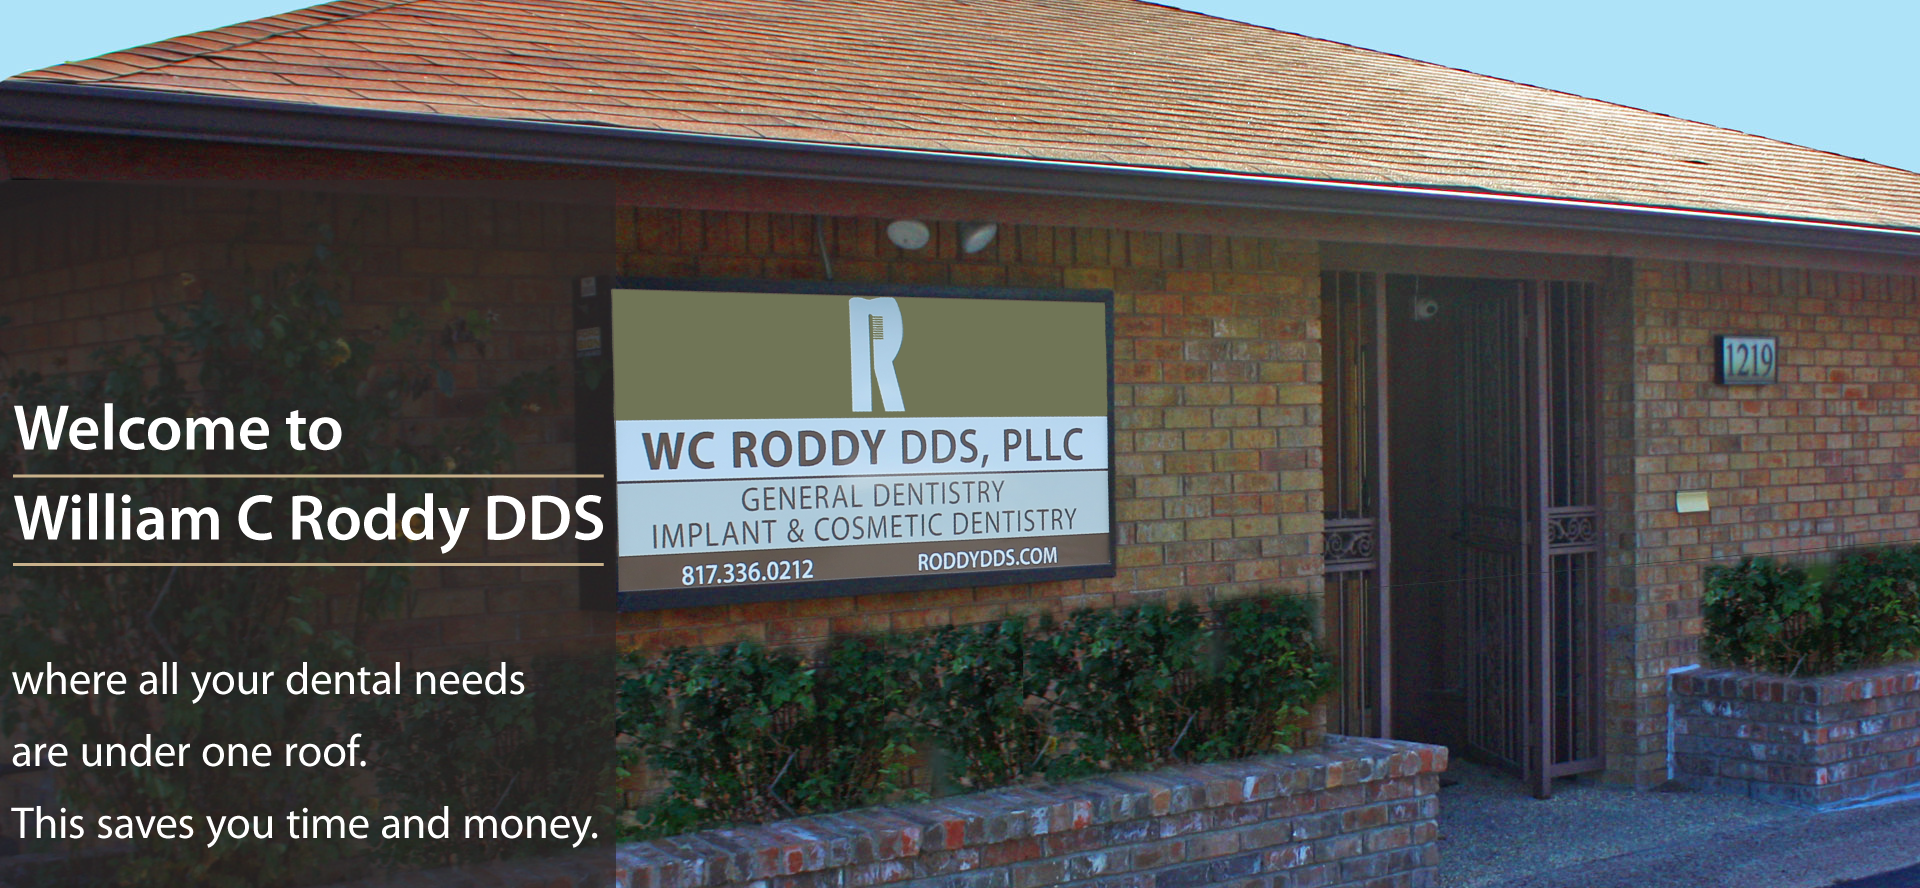 Image of WC Roddy DDS, PLLC exterior